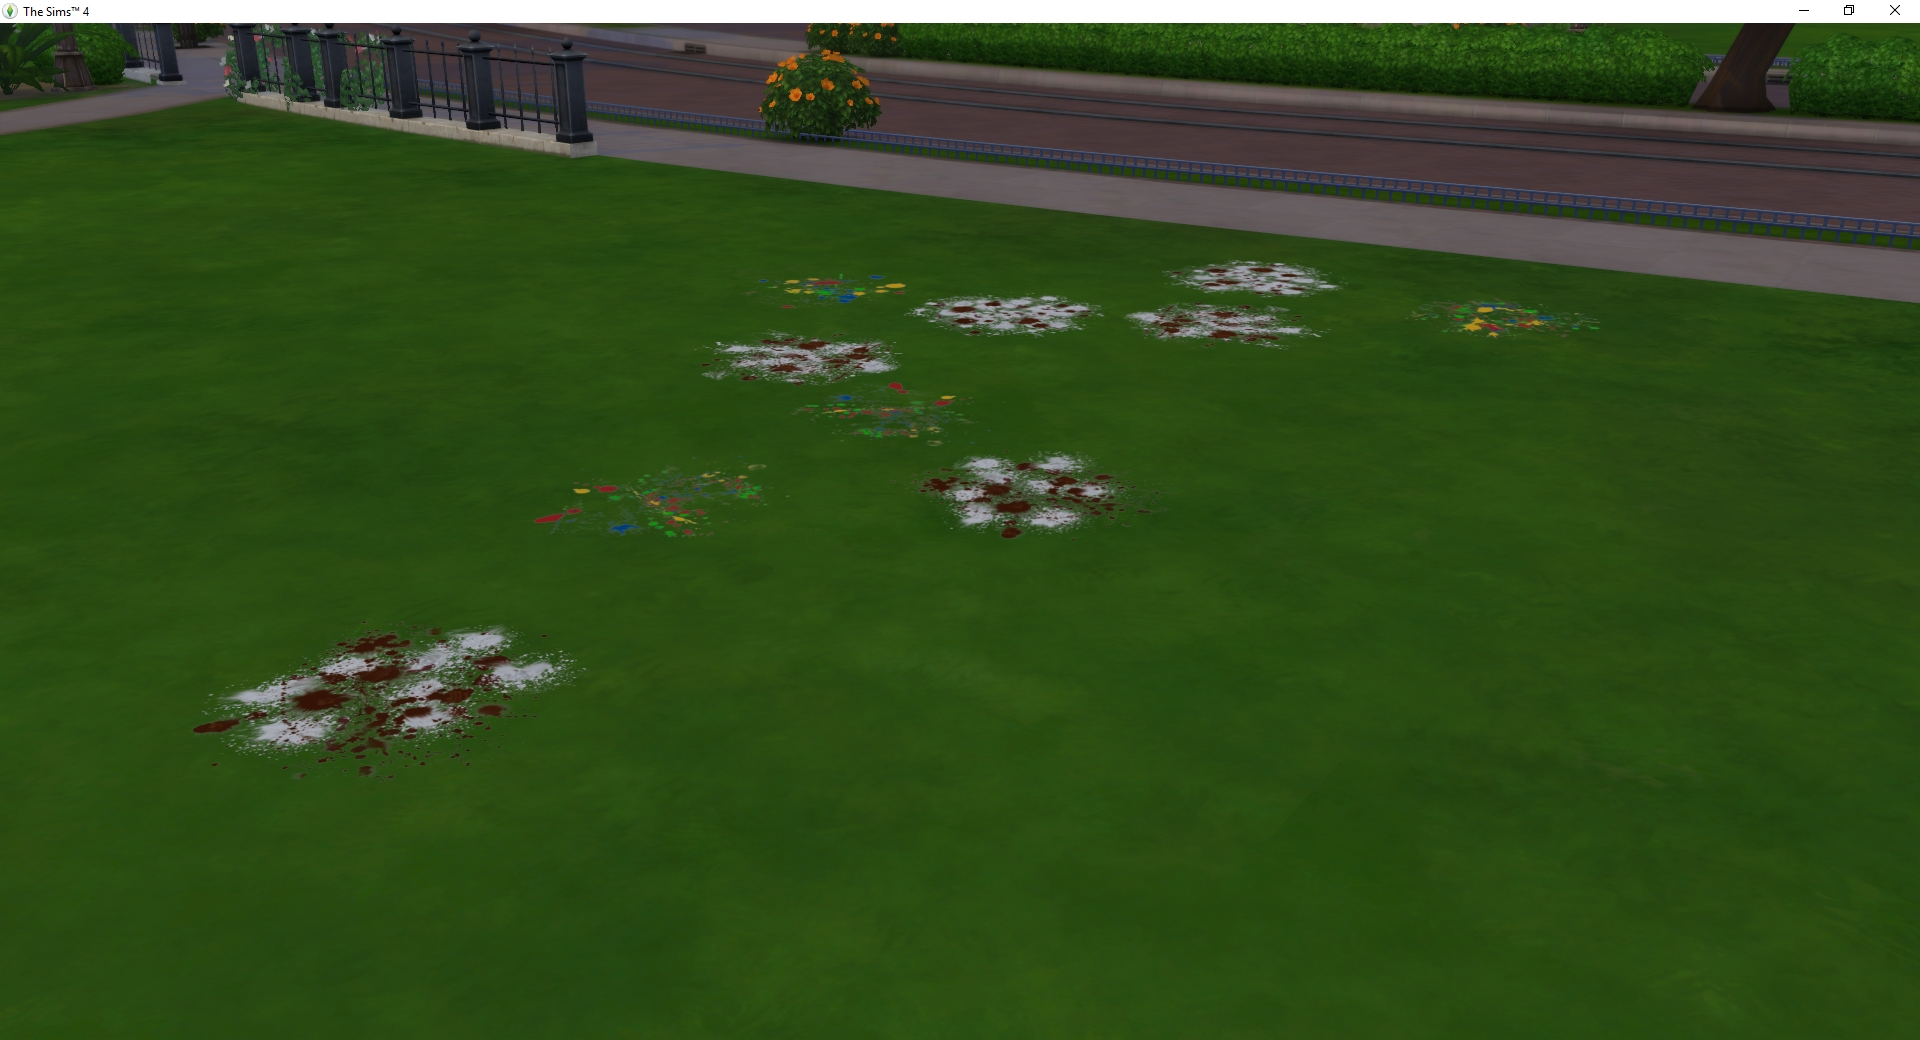 2019-07-06 08_23_29-The Sims™ 4